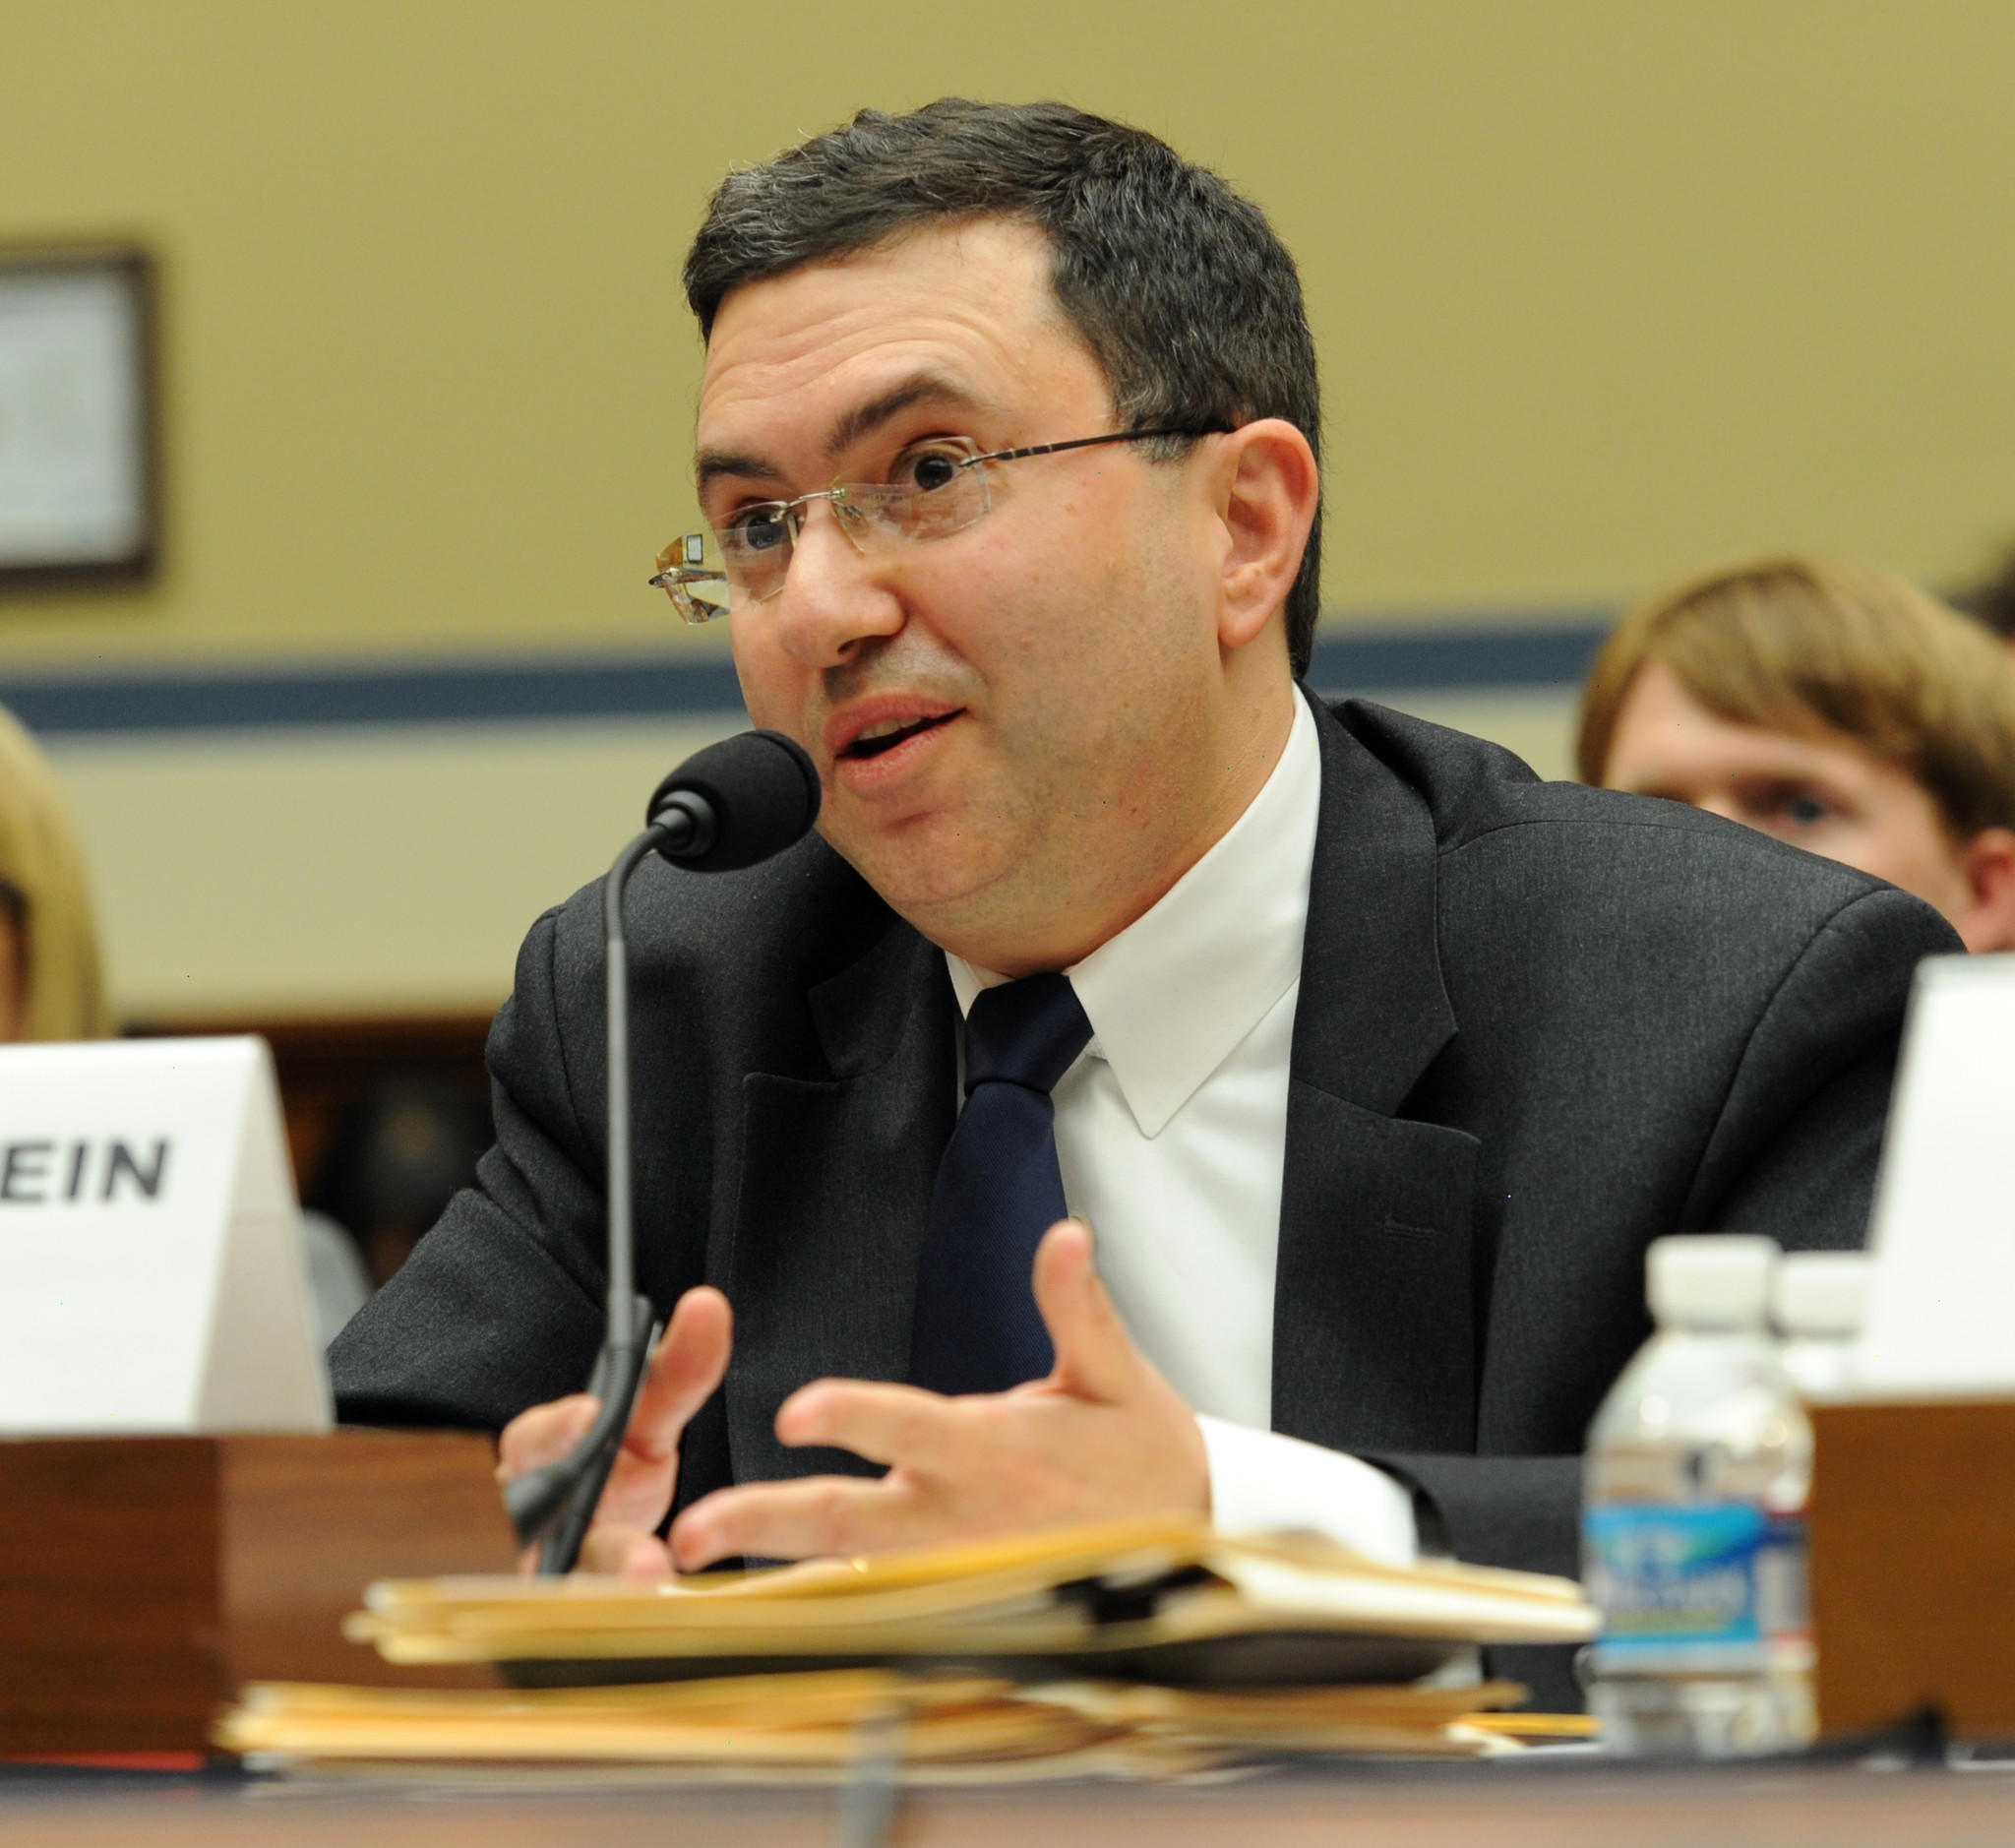 Dr. Joshua M. Sharfstein, Maryland Secretary of Health and Mental Hygiene, testifies before the U.S. House Committee on Oversight and Government Reform on Examining ObamaCare's Problem-Filled State Exchanges.